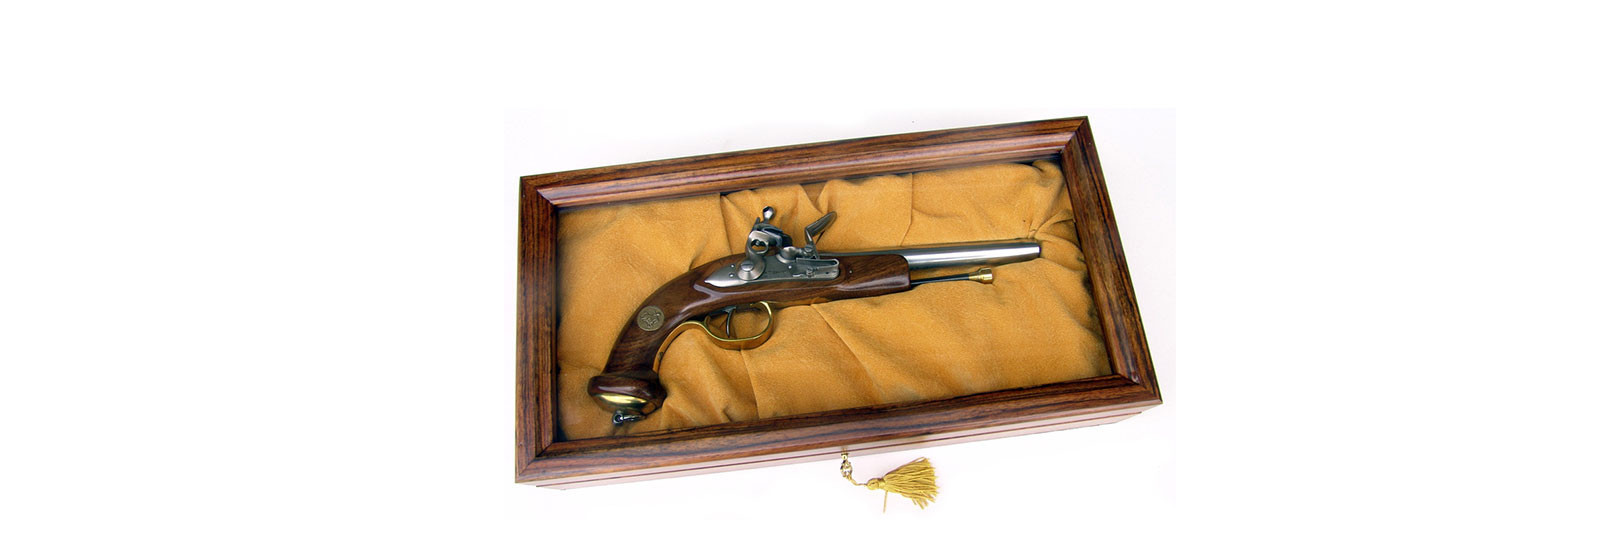 Pistola Mamelouk commemorativa in cofanetto